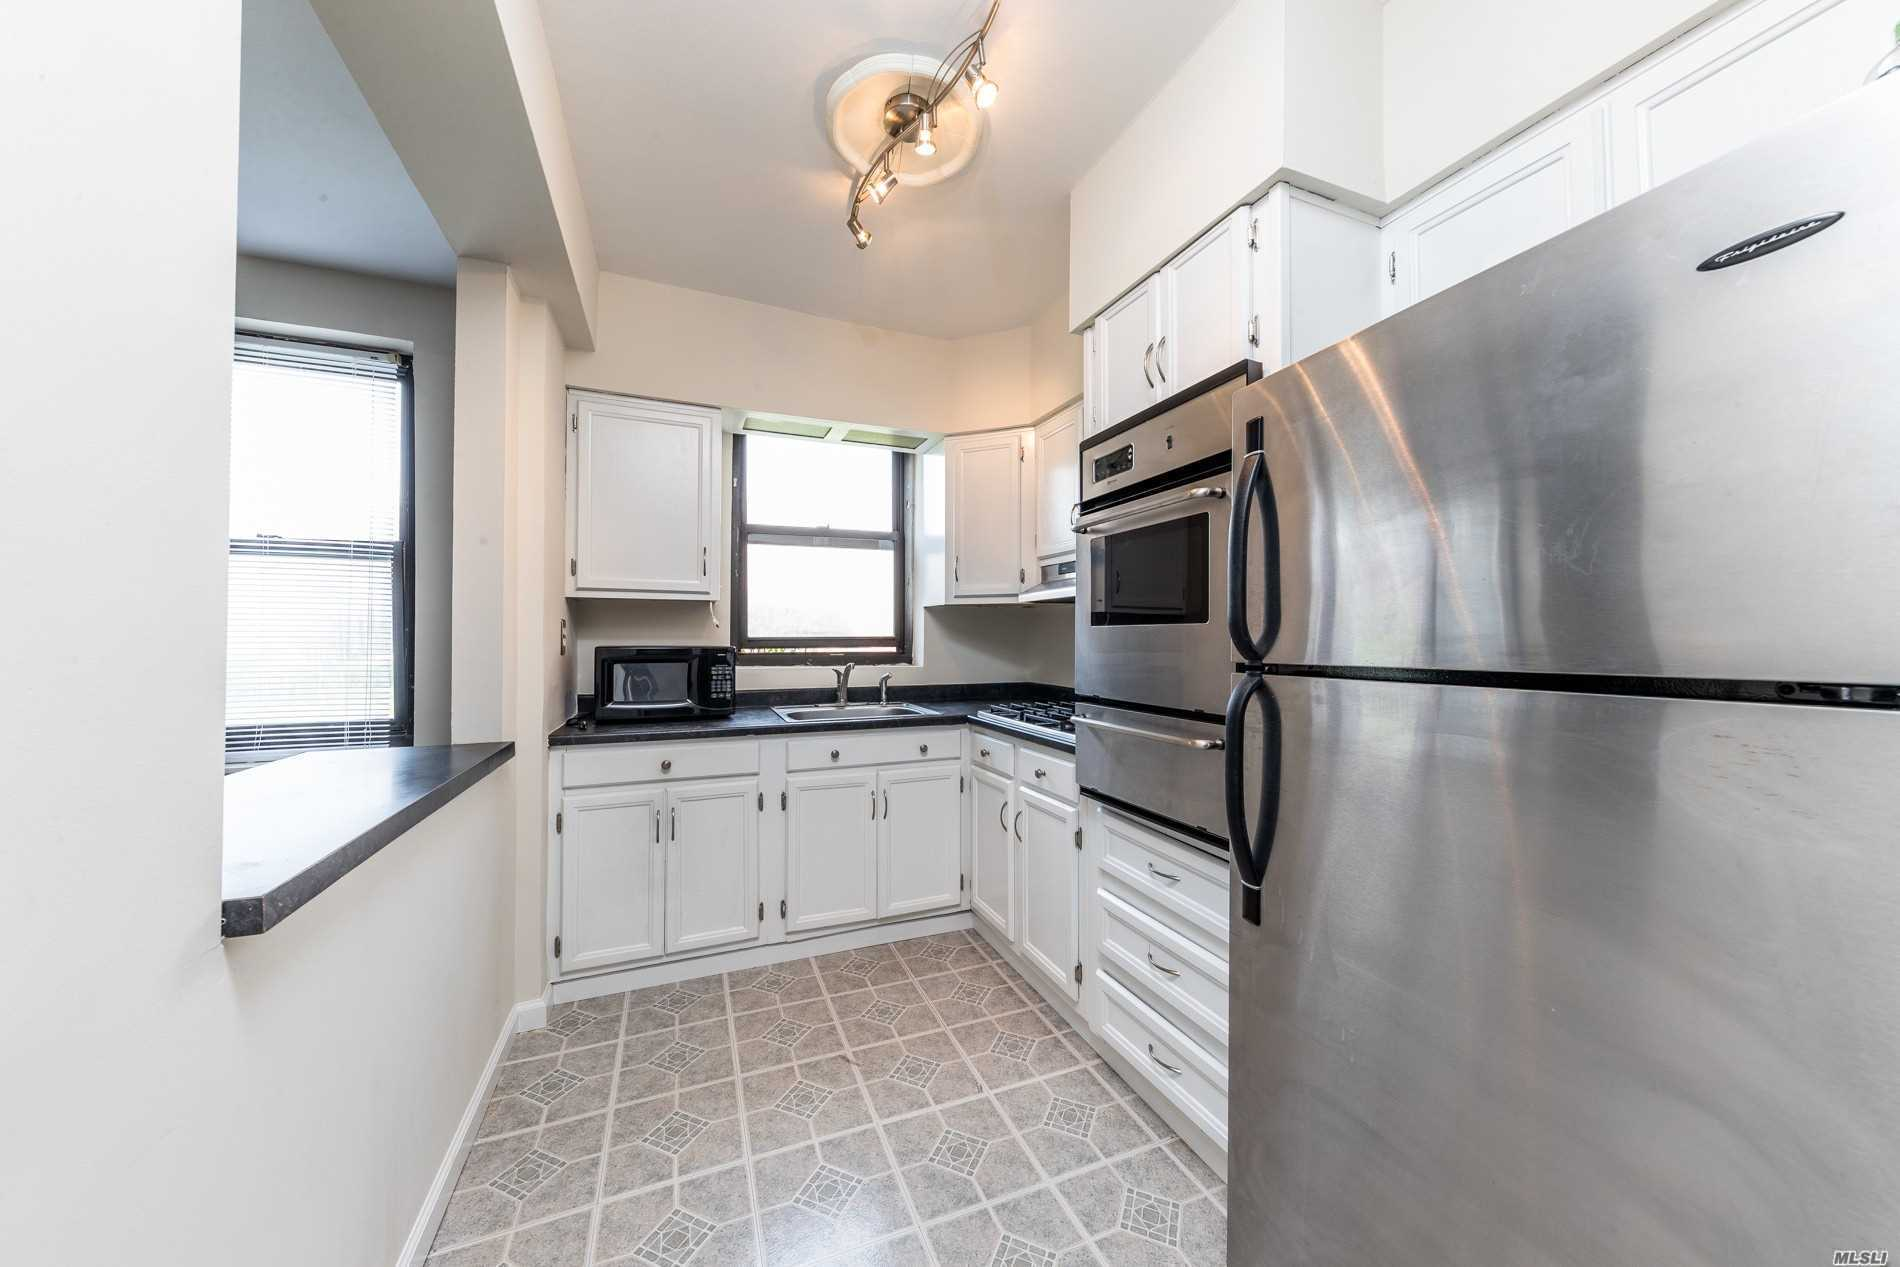 Lovely Rockville Centre First Floor, 2 Bedroom Co-Op Rental, Includes All Utilities, Spacious Unit With Updated Stainless Appliances. Includes A Garage Spot And Laundry Facilities In Basement. No Smoking On Building Premises. No Pets. Close To Lirr, Restaurants, And Rvc Shopping!